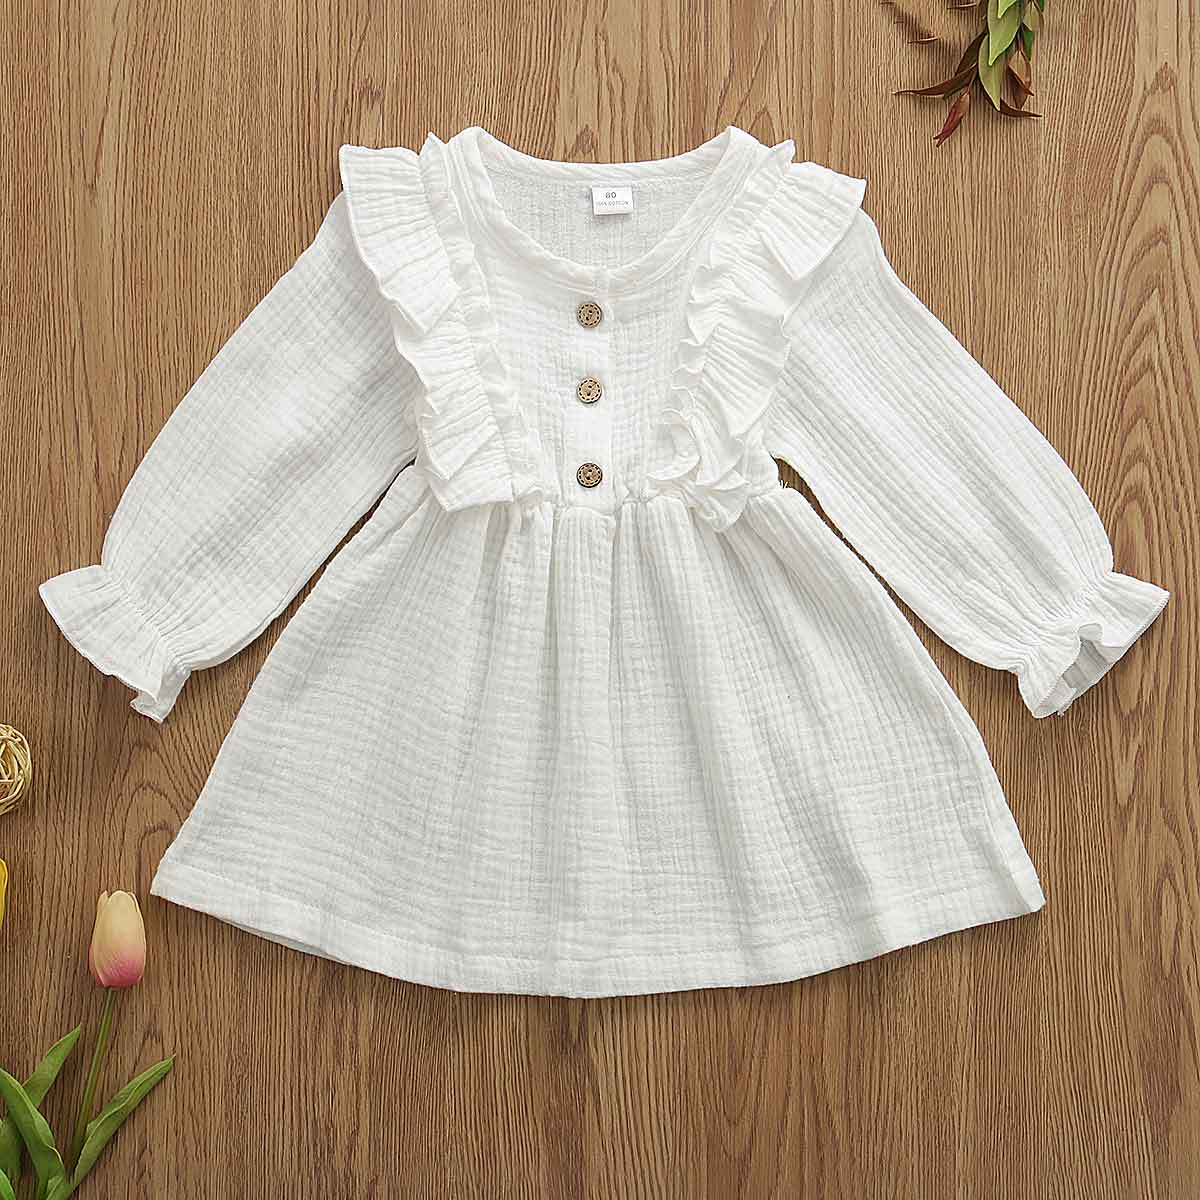 0-5Y Toddler Kids Baby Girl Autumn Dress Ruffles Long Sleeve Solid Cotton Linen Party Casual Dress Clothes